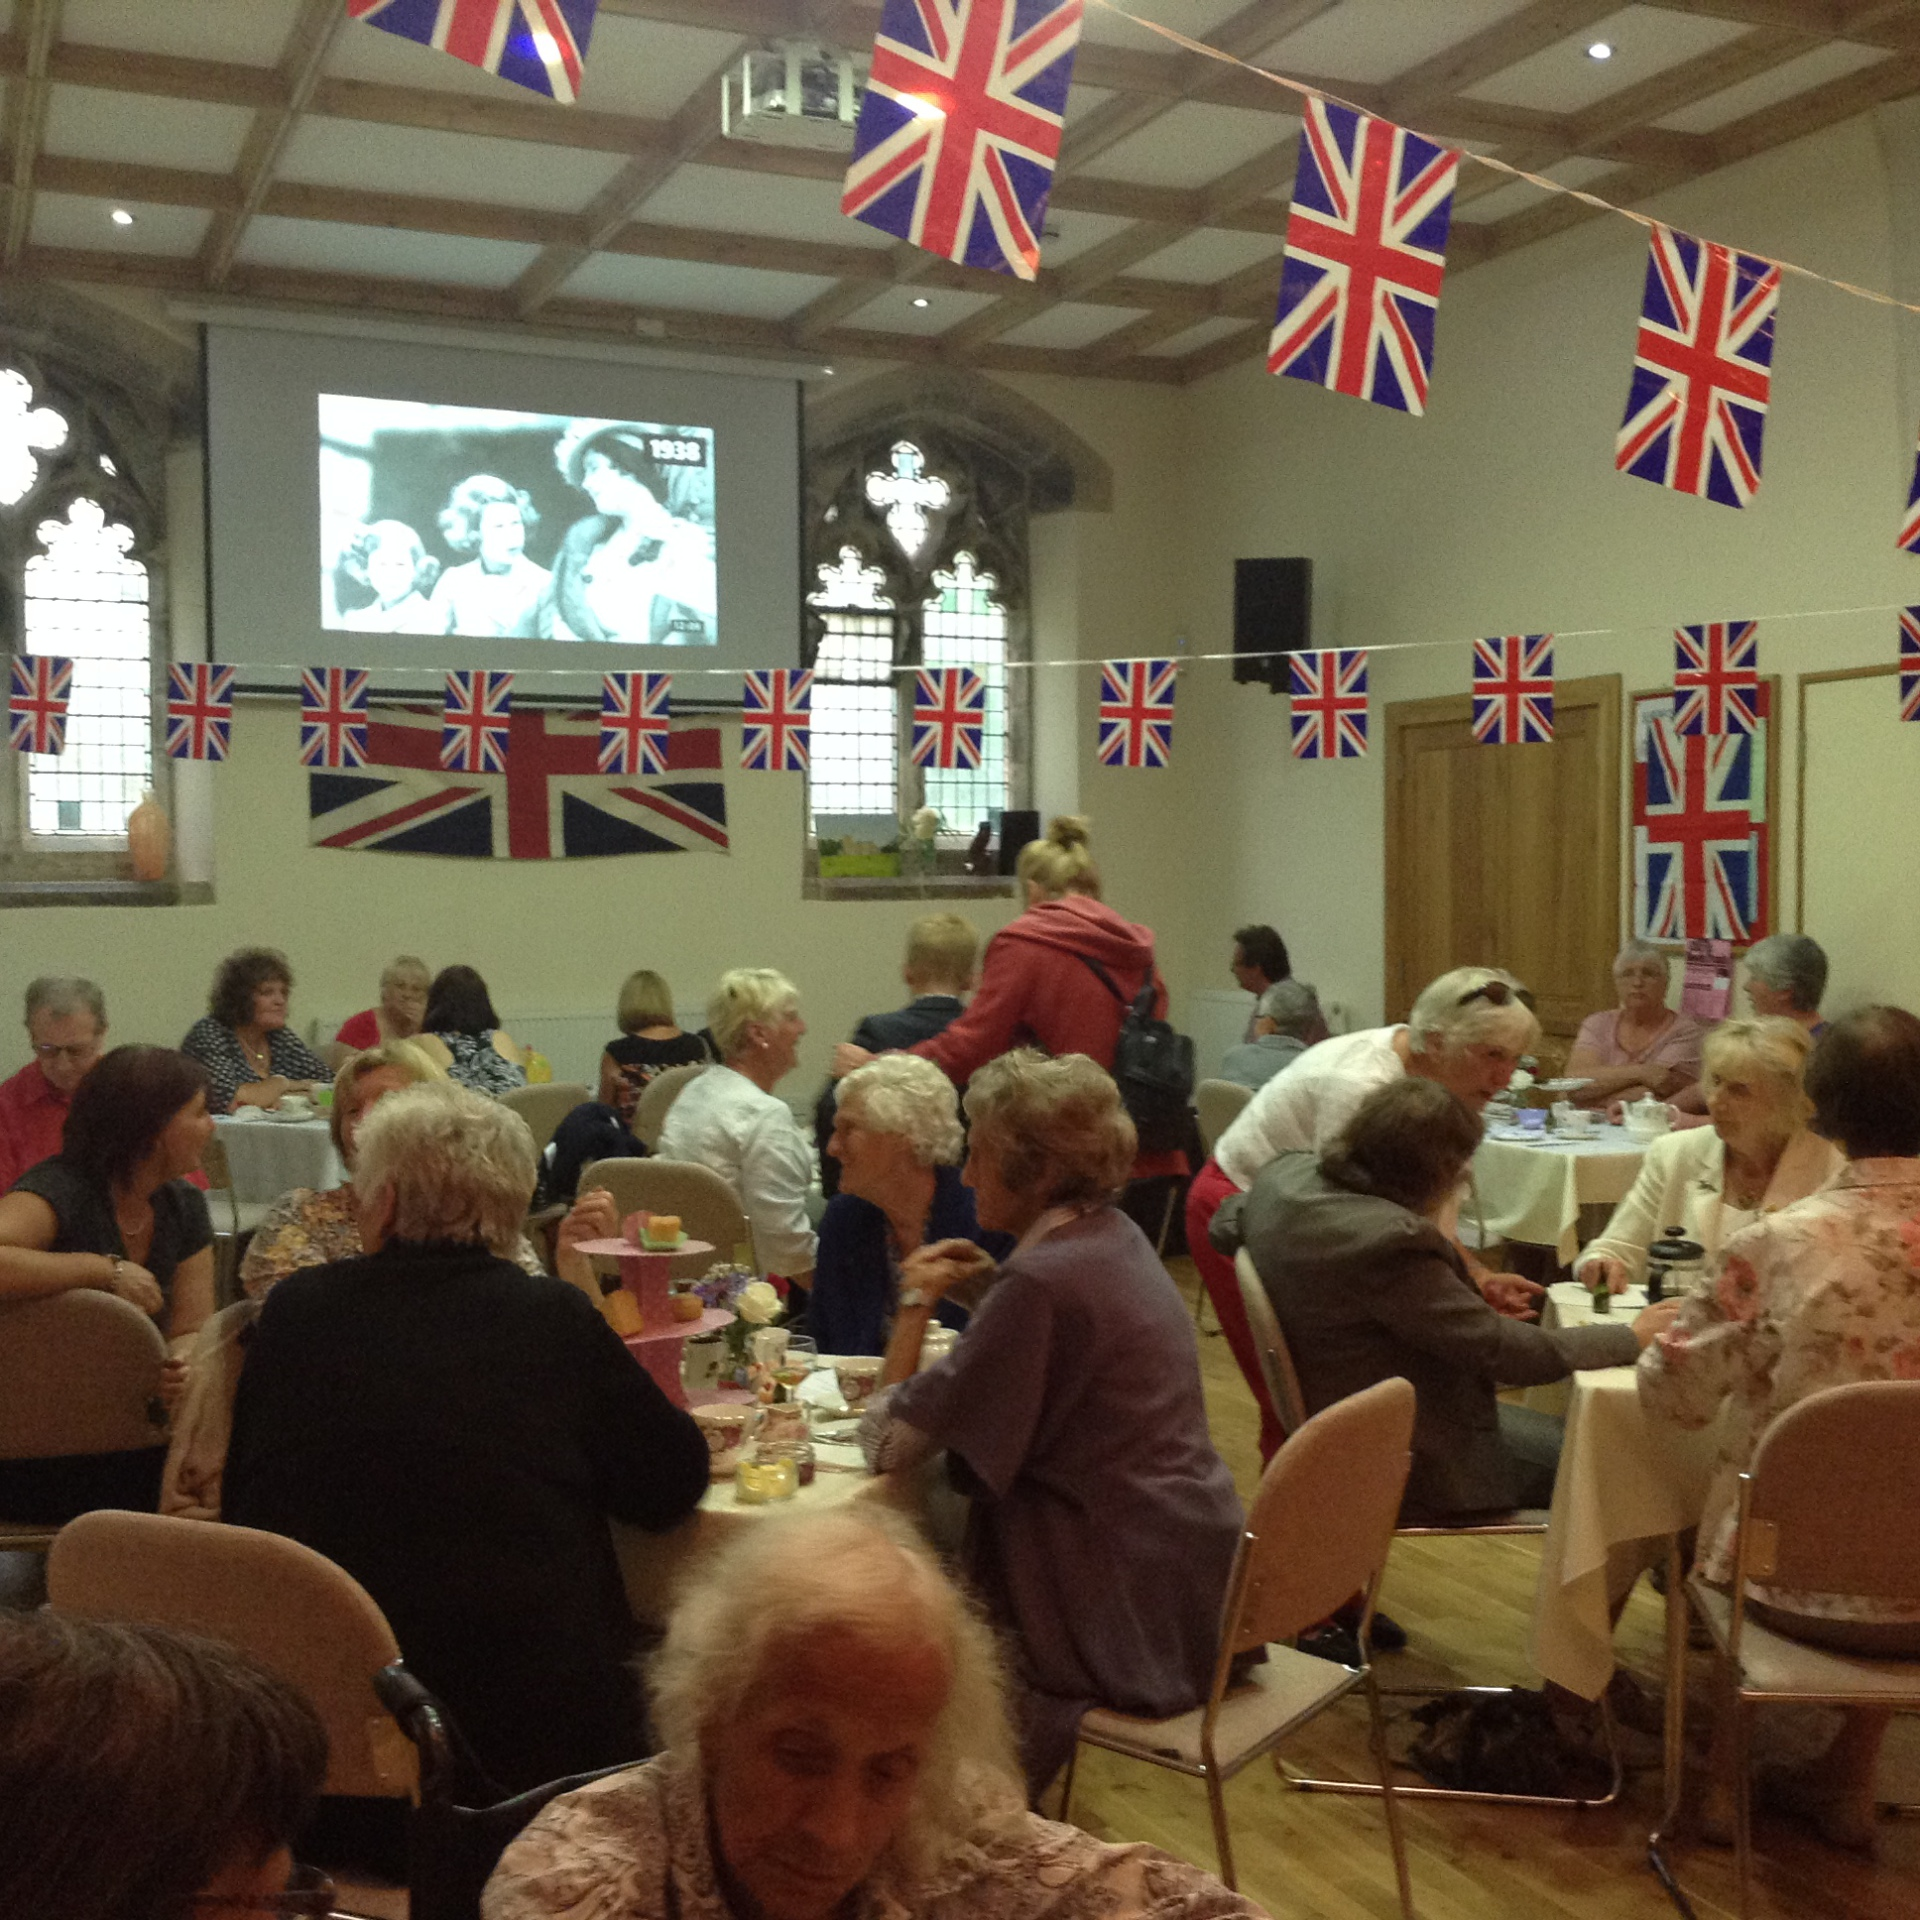 Afternoon Tea in full swing in the hall